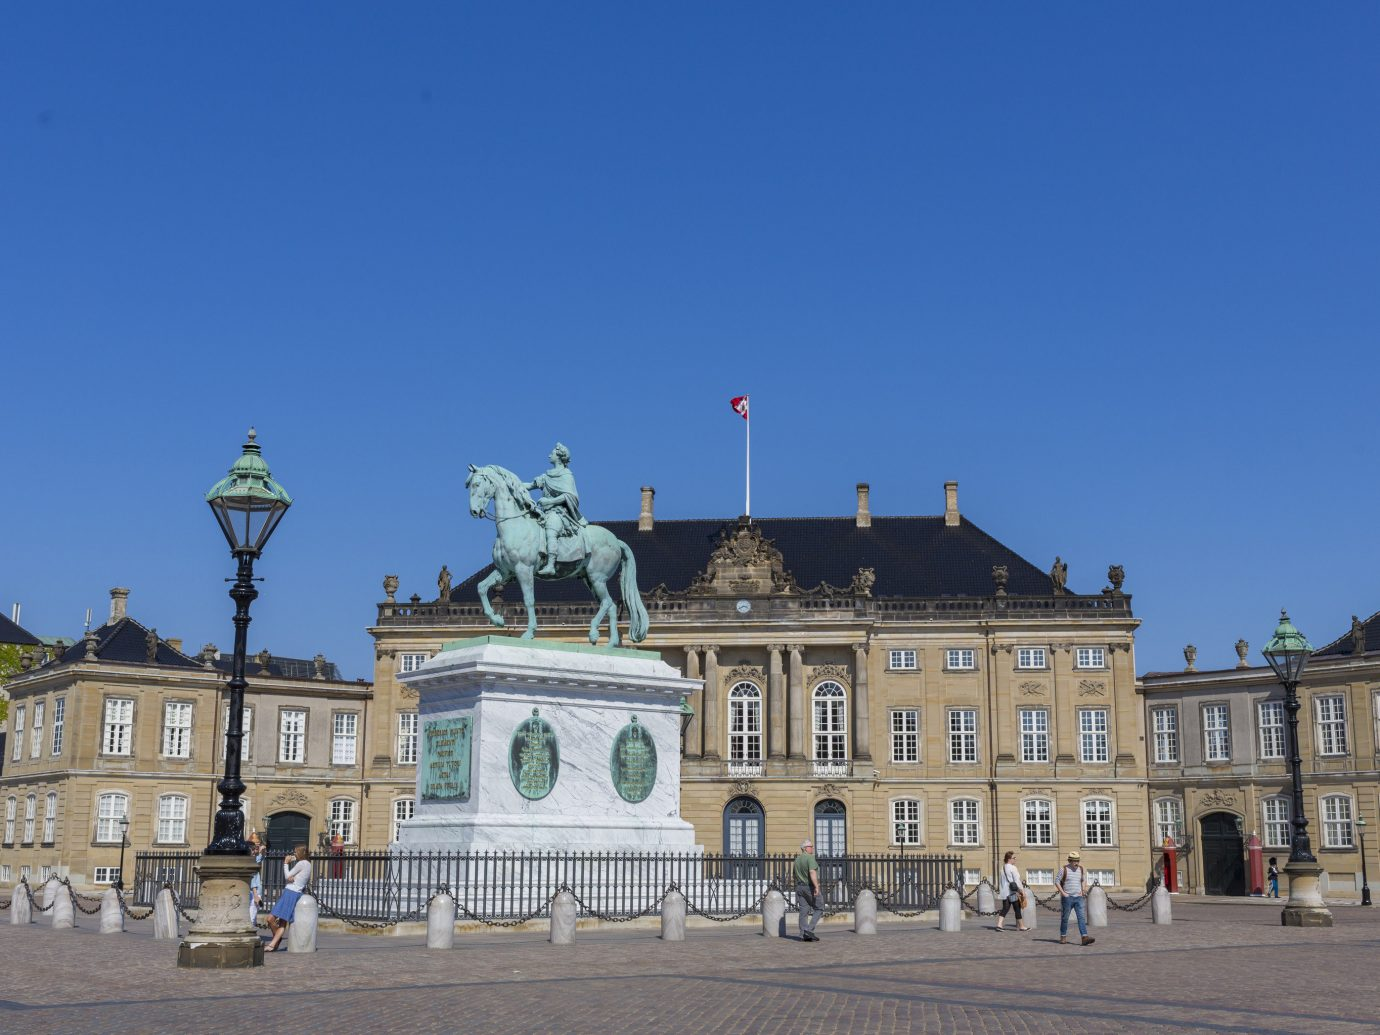 Copenhagen Denmark Trip Ideas palace landmark sky château classical architecture town square plaza building stately home estate tourist attraction presidential palace City facade seat of local government historic site metropolitan area monument tourism official residence